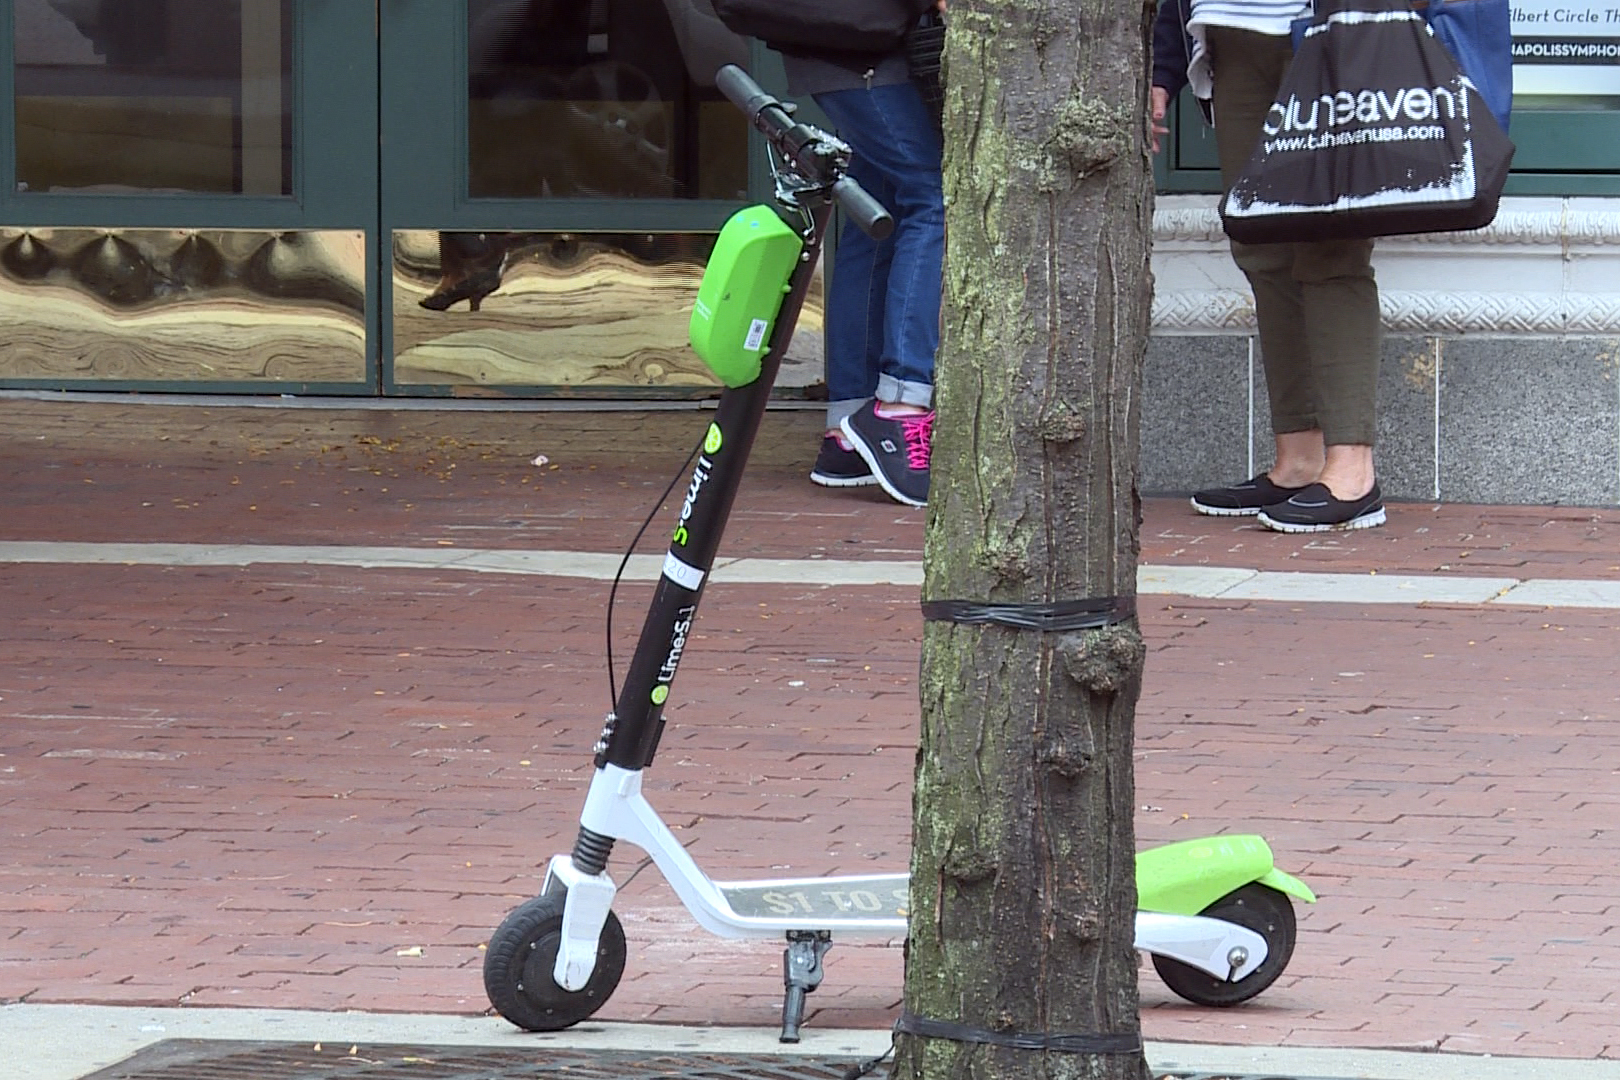 lime-scooter.jpg